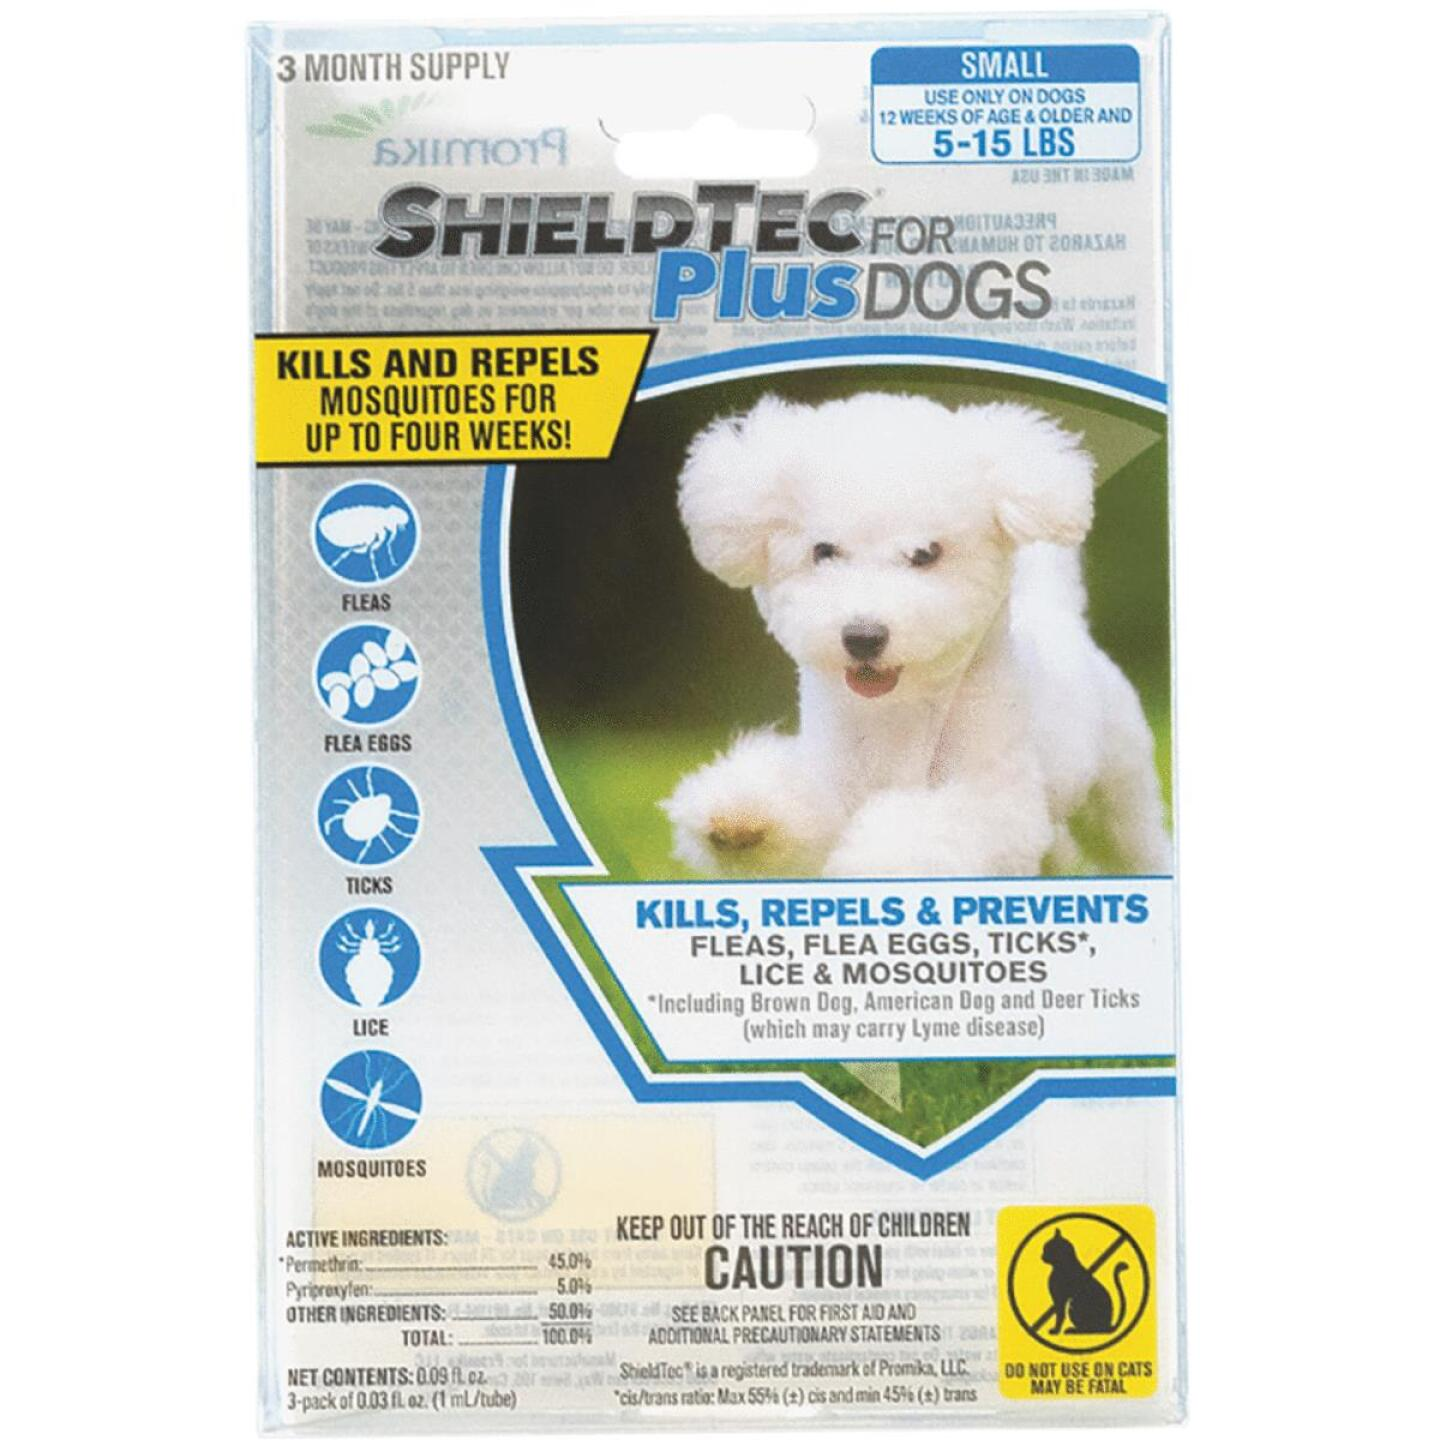 ShieldTec Plus 3-Month Supply Flea & Tick Treatment For Small Size Dogs 5 Lb. to 15 Lb. Image 1